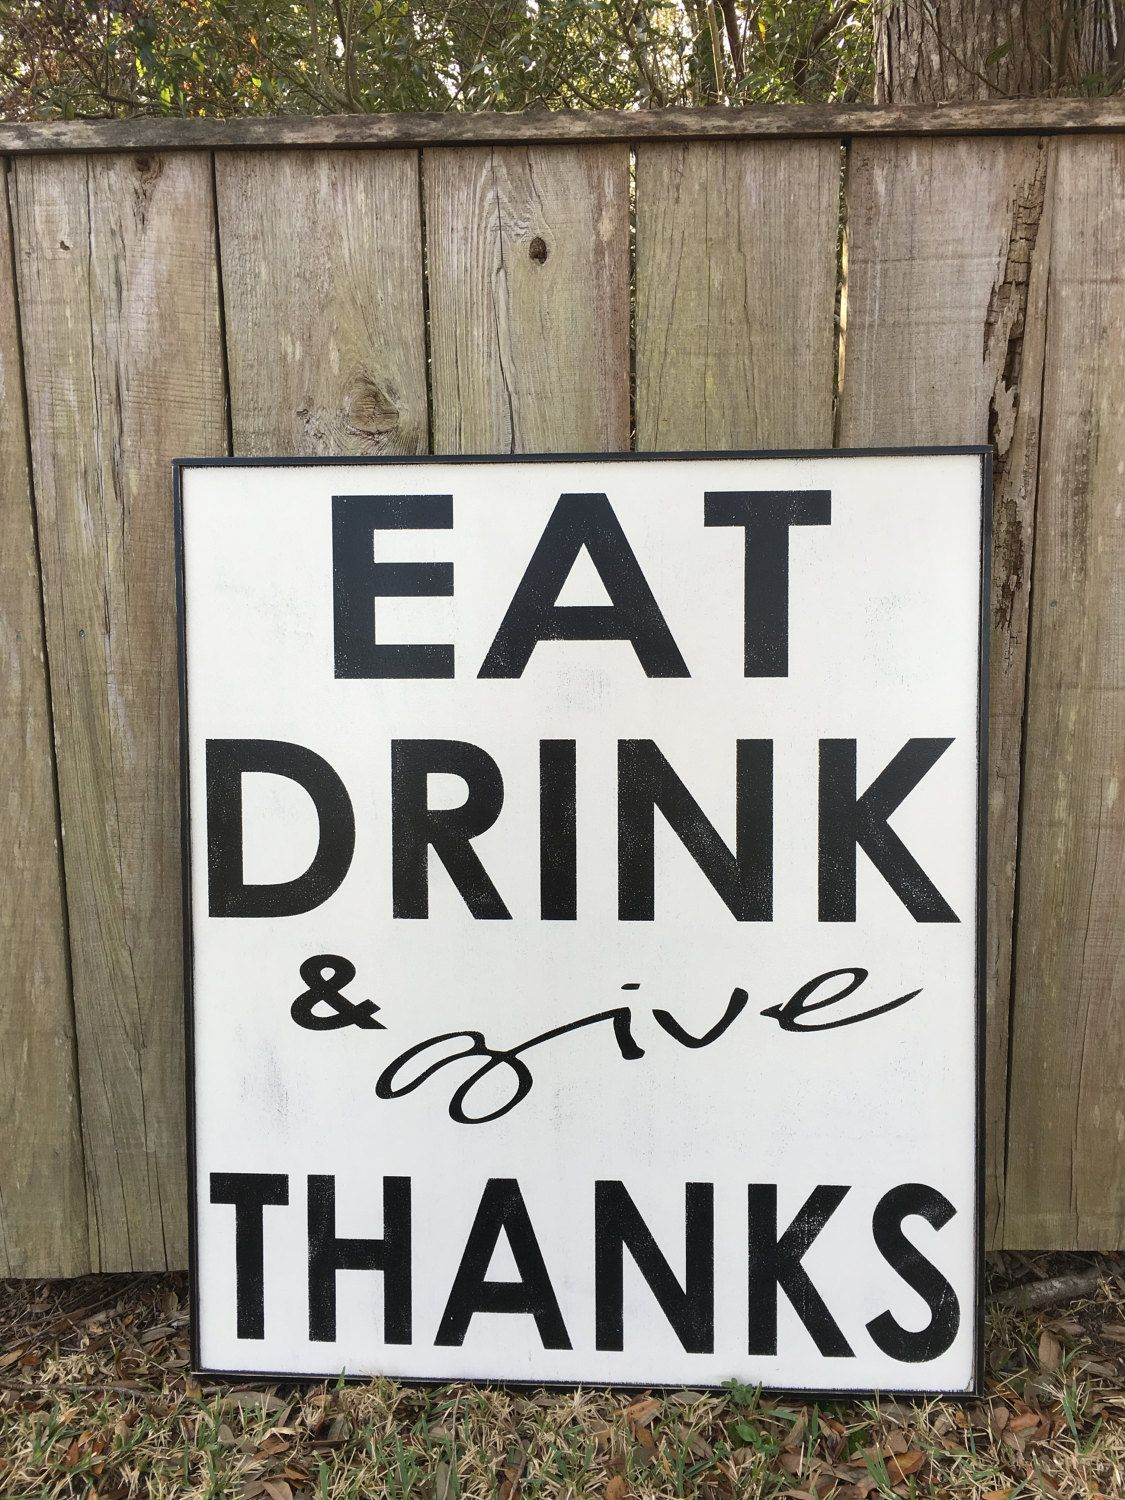 Wall Signs Decor Captivating Eat Drink And Give Thanks Signfixer Upper Inspired Signs345X40 Inspiration Design